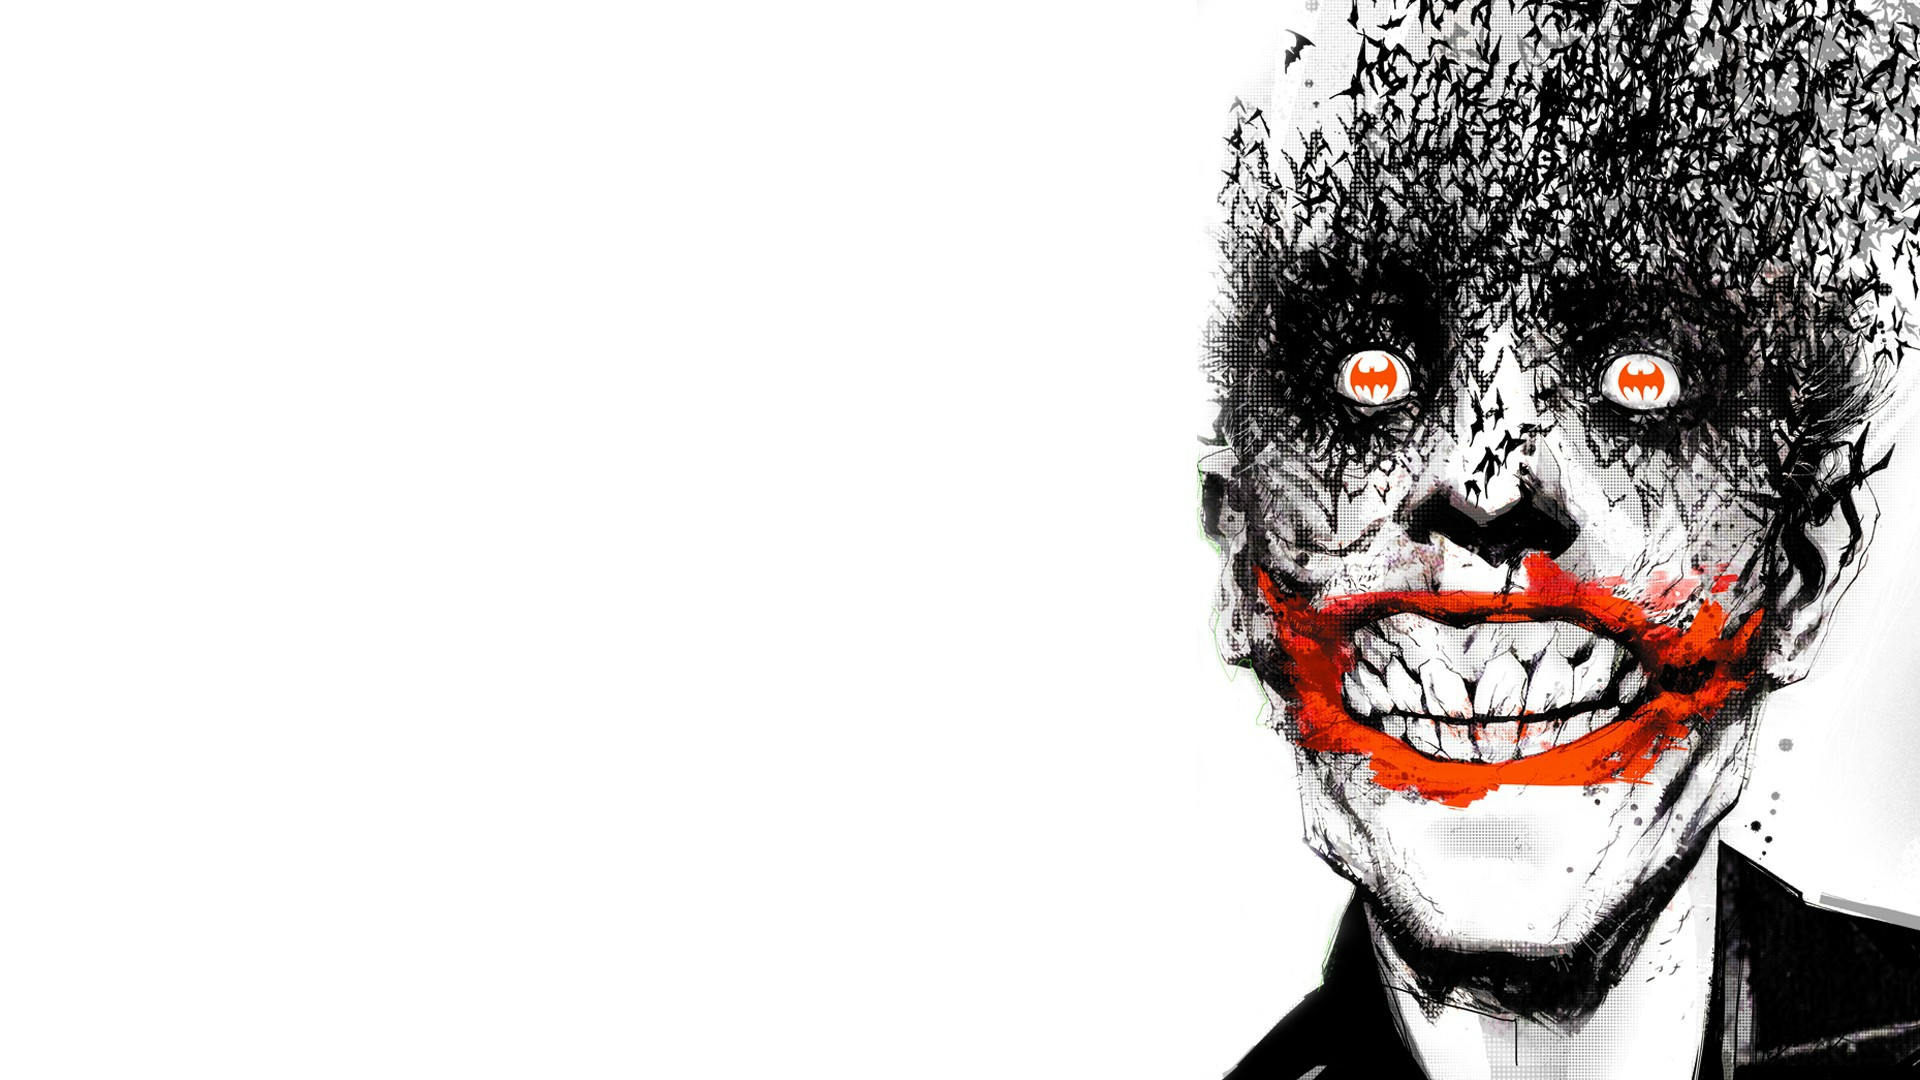 Joker Comic wallpaper 163131 1920x1080